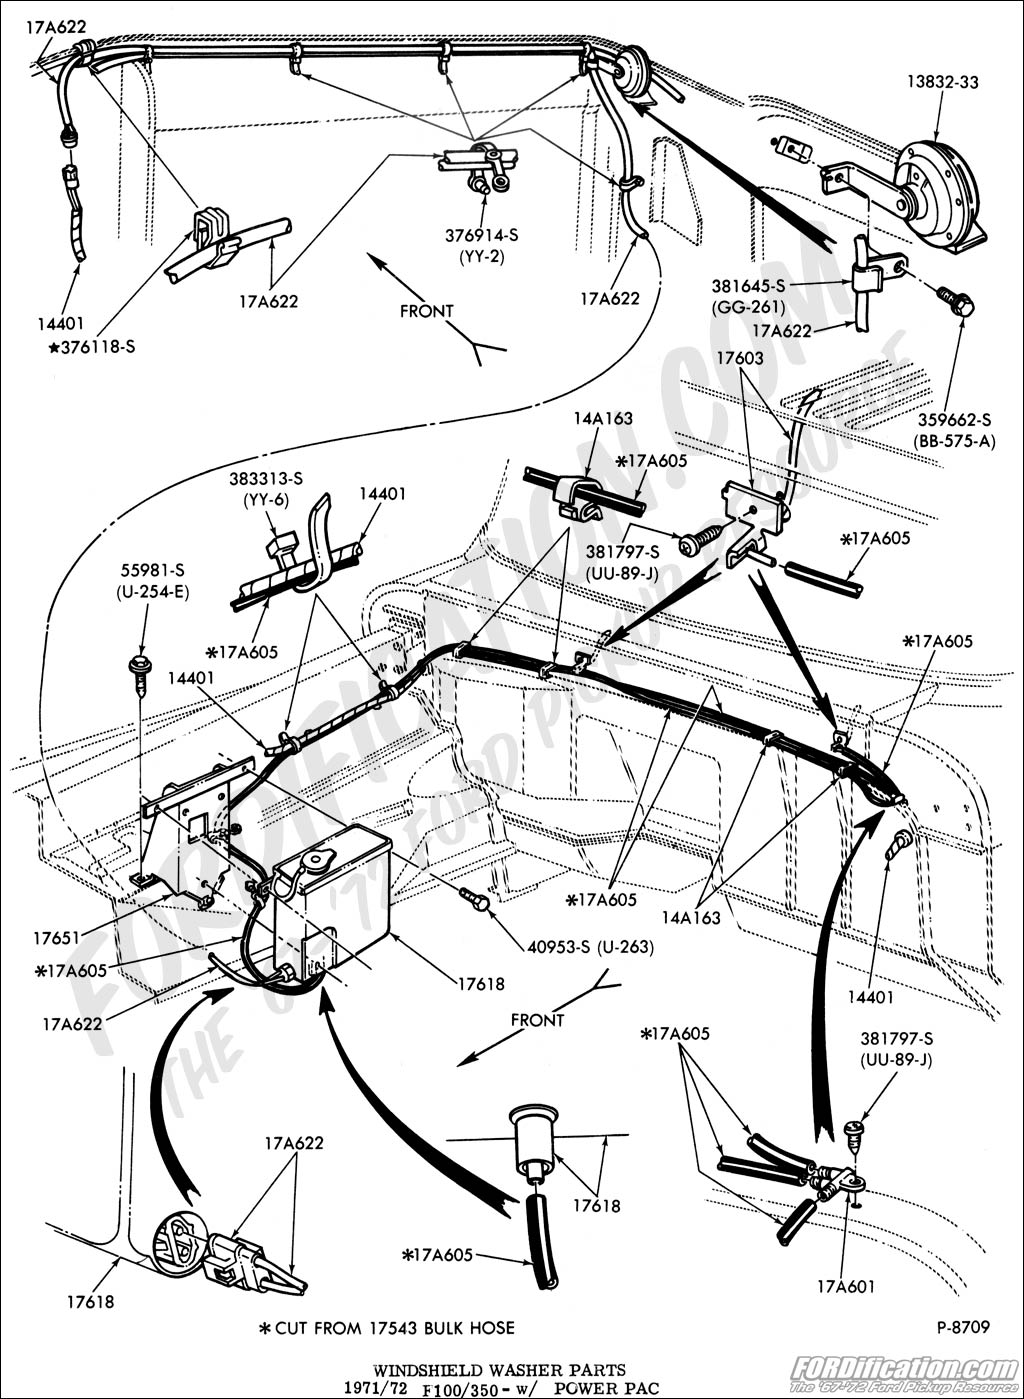 2002 Lexus Engine Diagram Simple Guide About Wiring Harness Is300 Ford Truck Technical Drawings And Schematics Section I